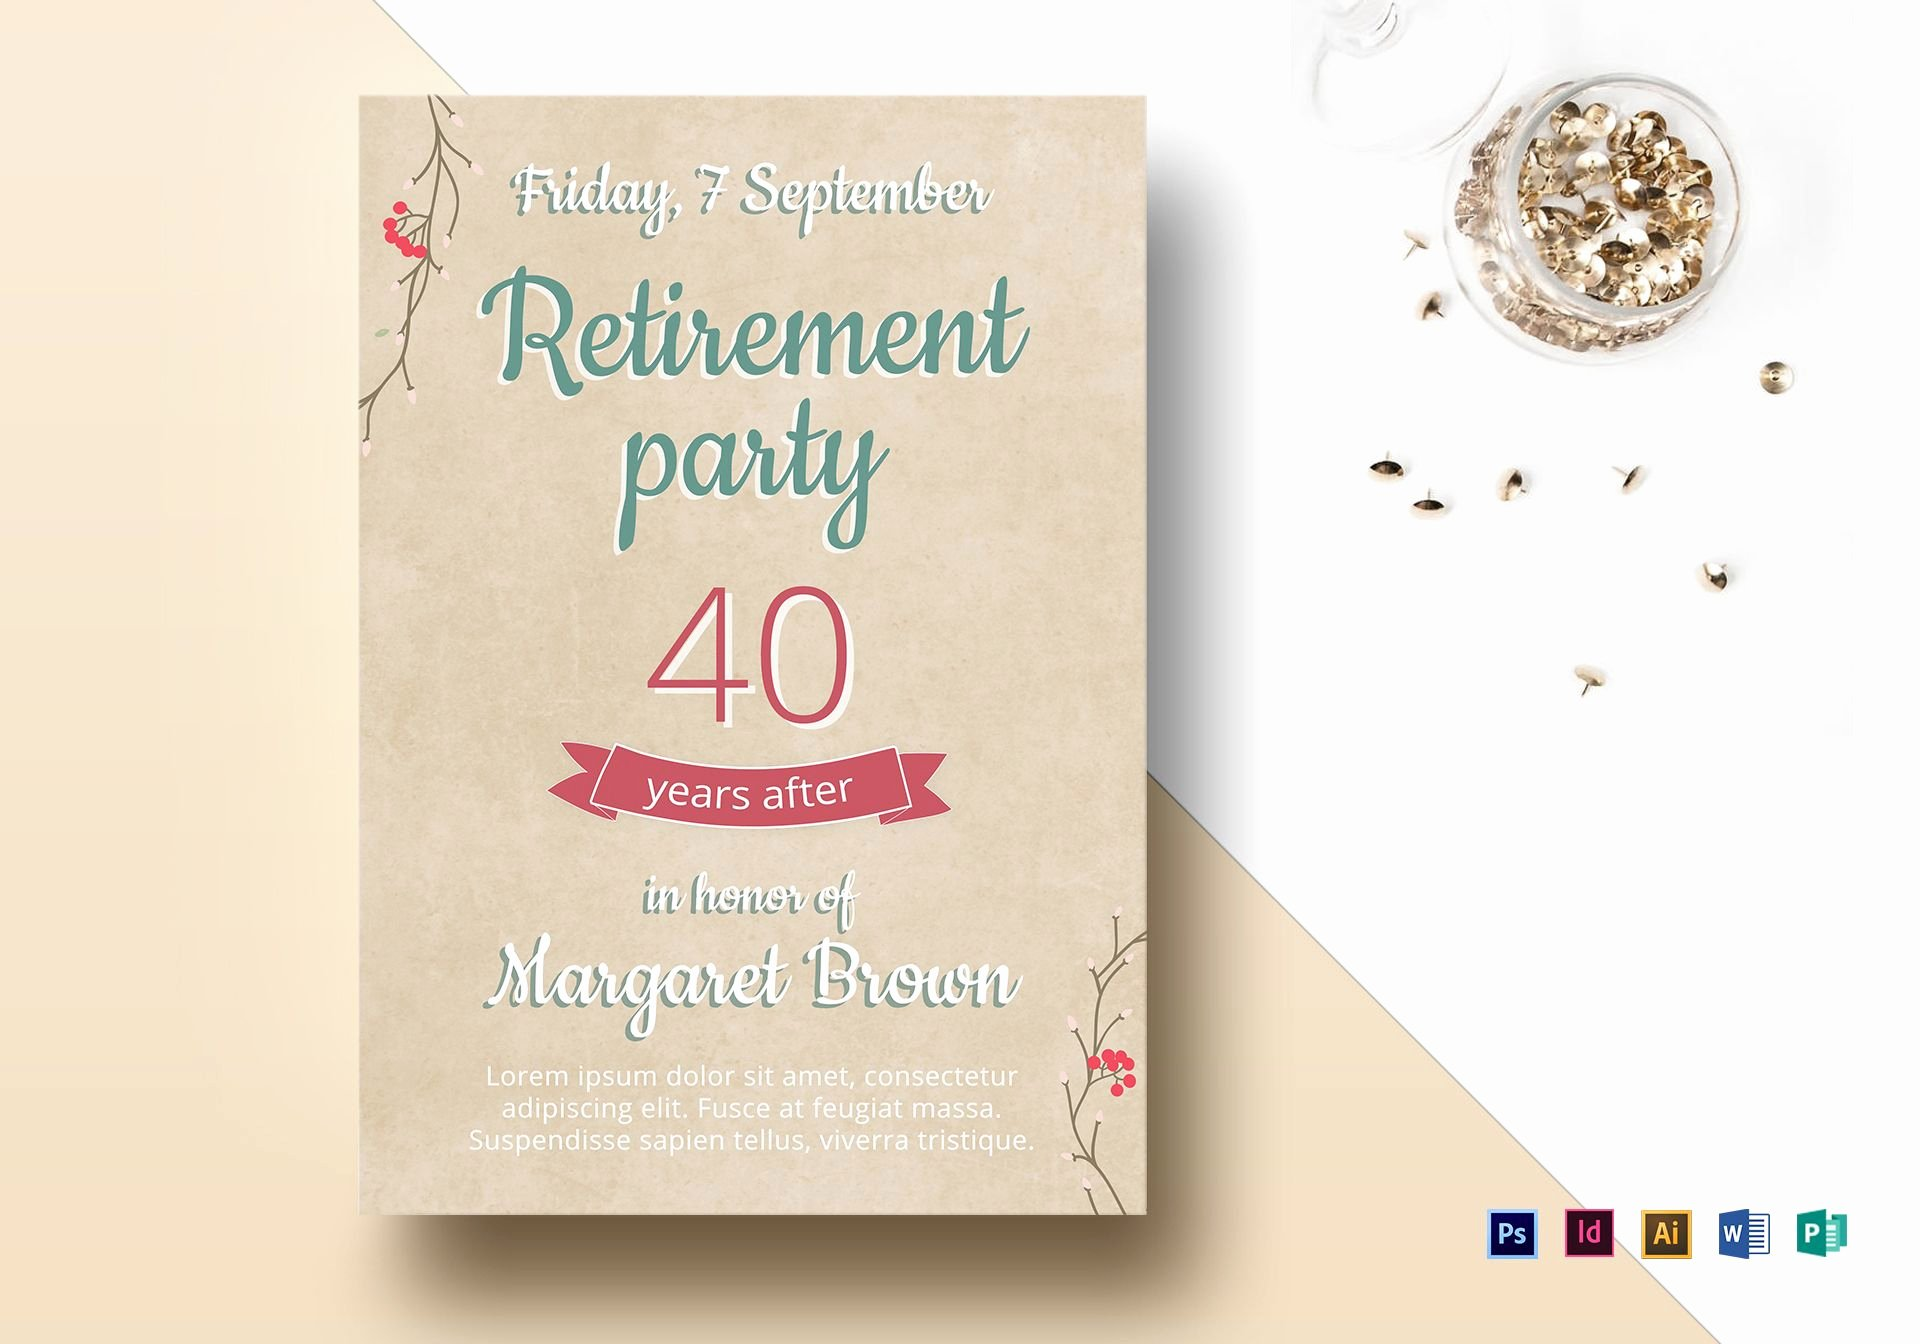 Retirement Flyer Free Template Unique Retirement Party Flyer Design Template In Psd Word